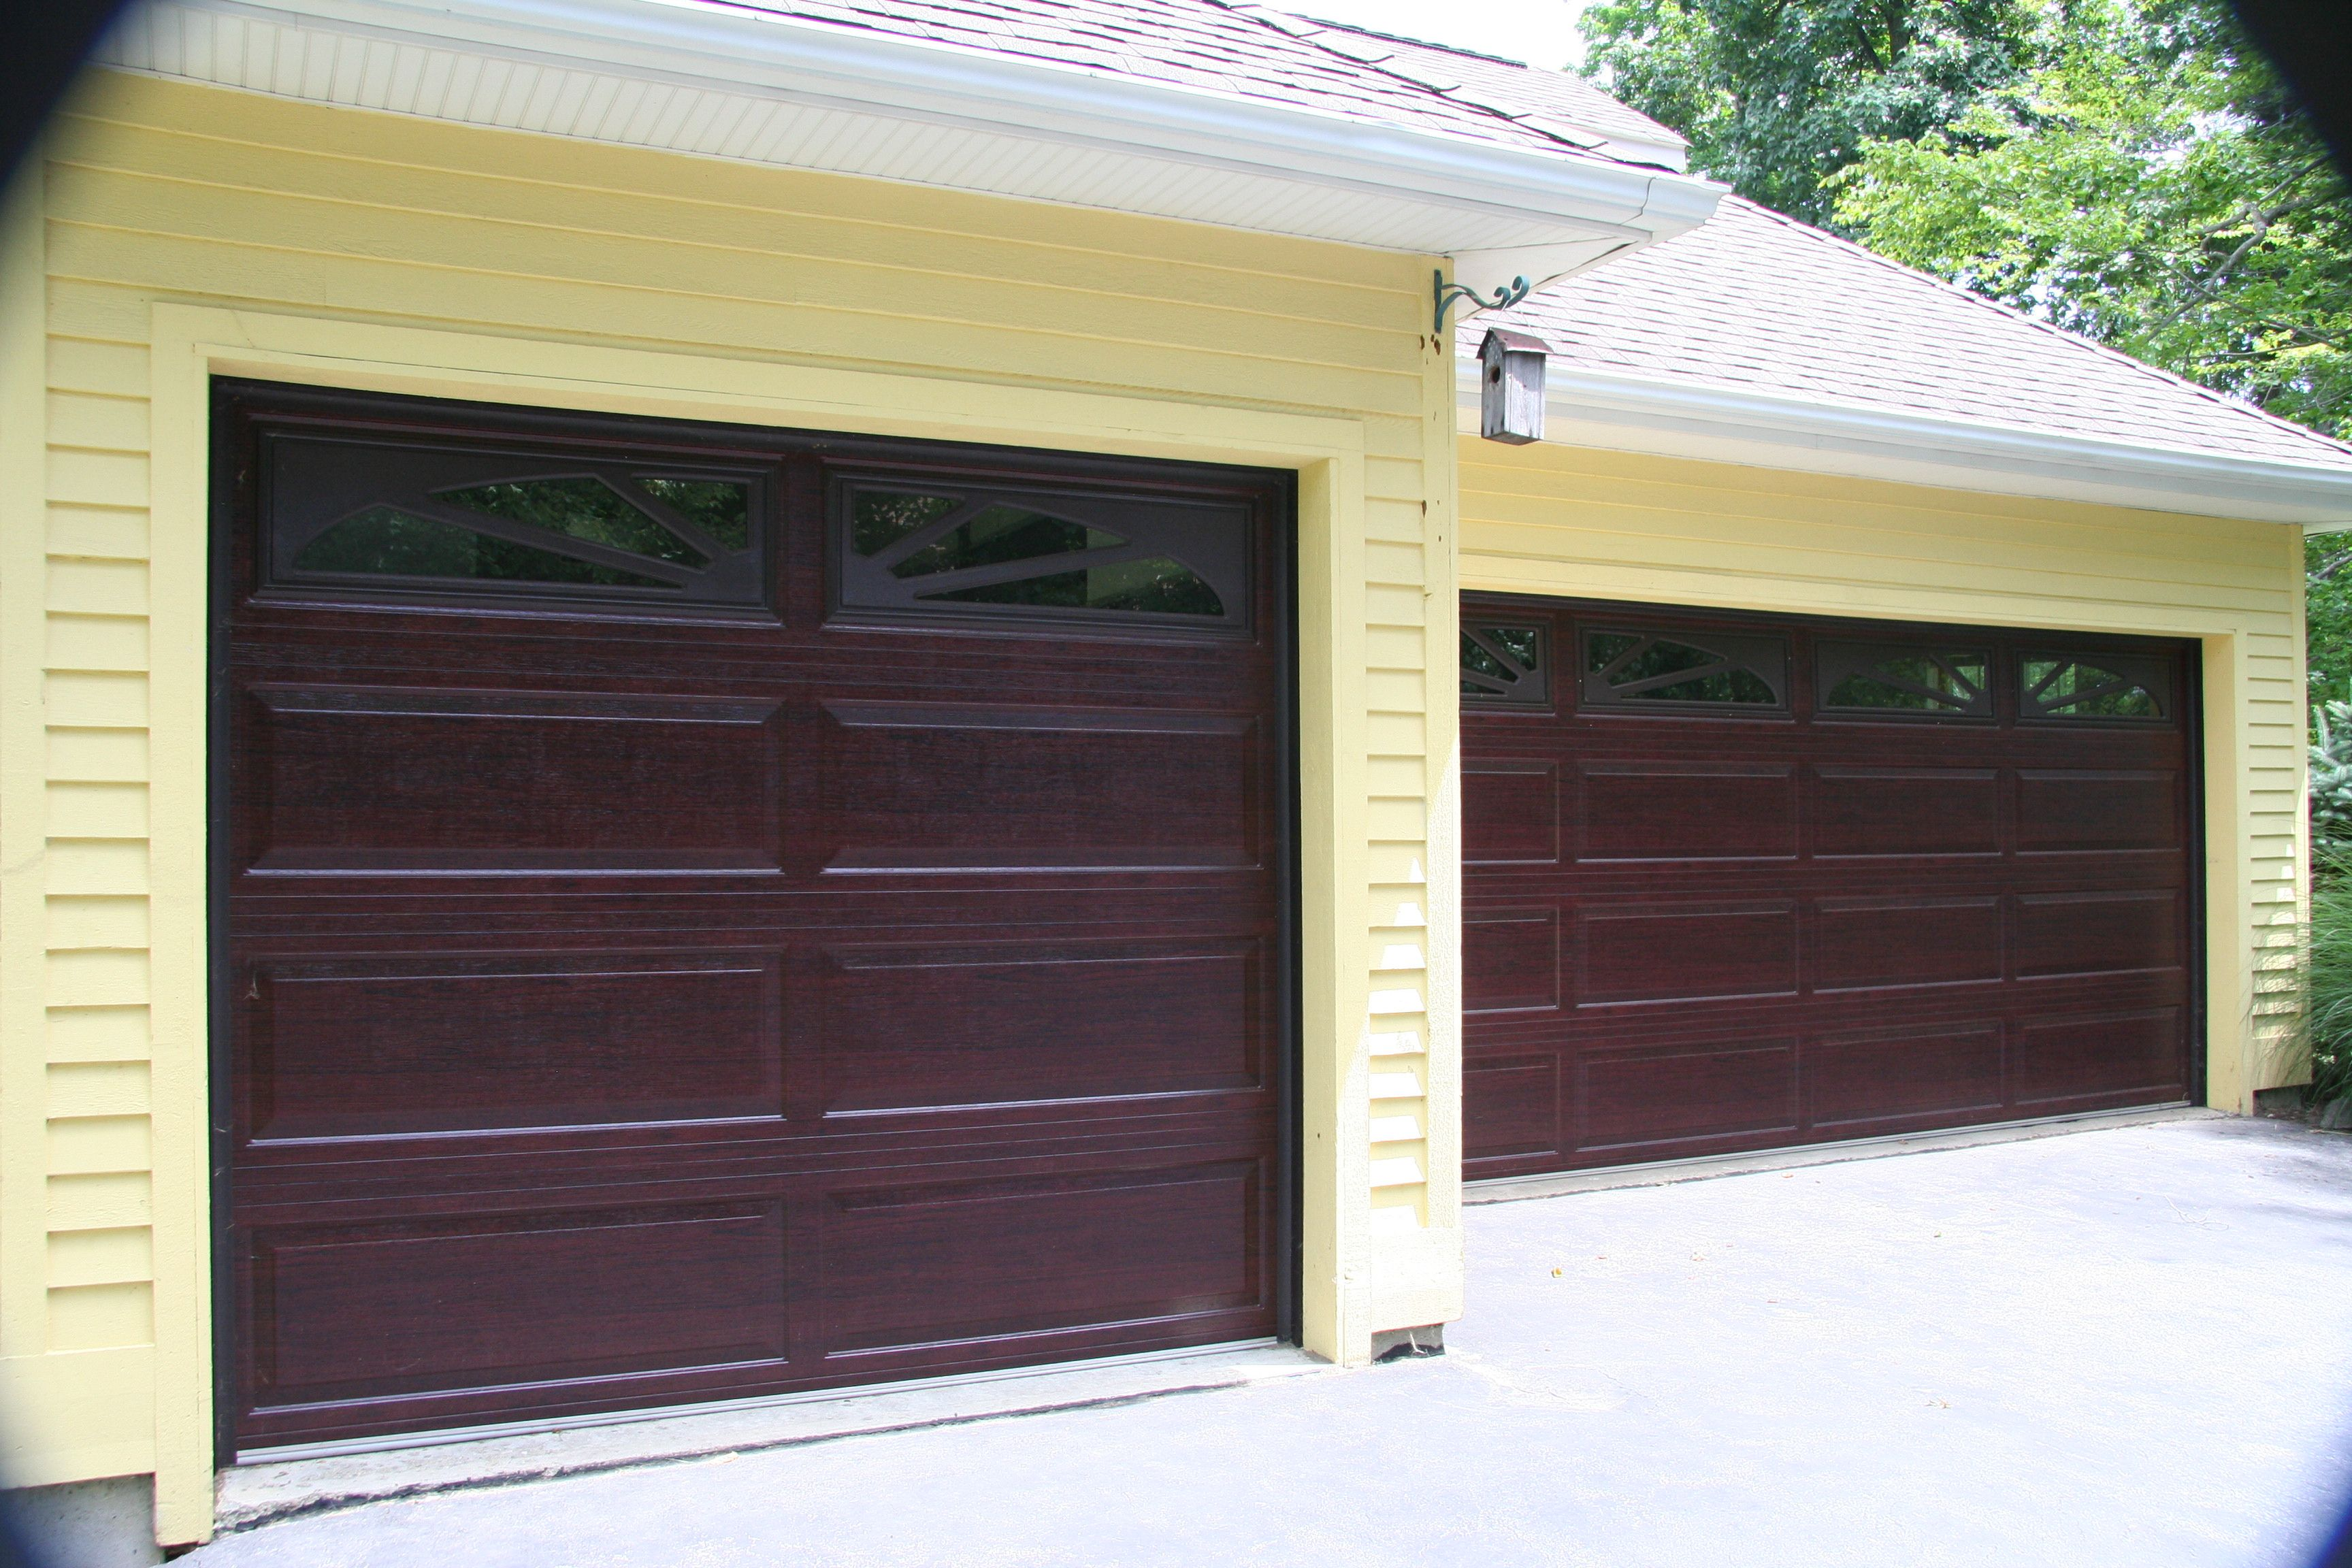 Raynor accufinish showcase cherry raynor garage doors eds garage door big rapids mi garage doors come in many shapes and sizes their functions vary from fundamental security rubansaba